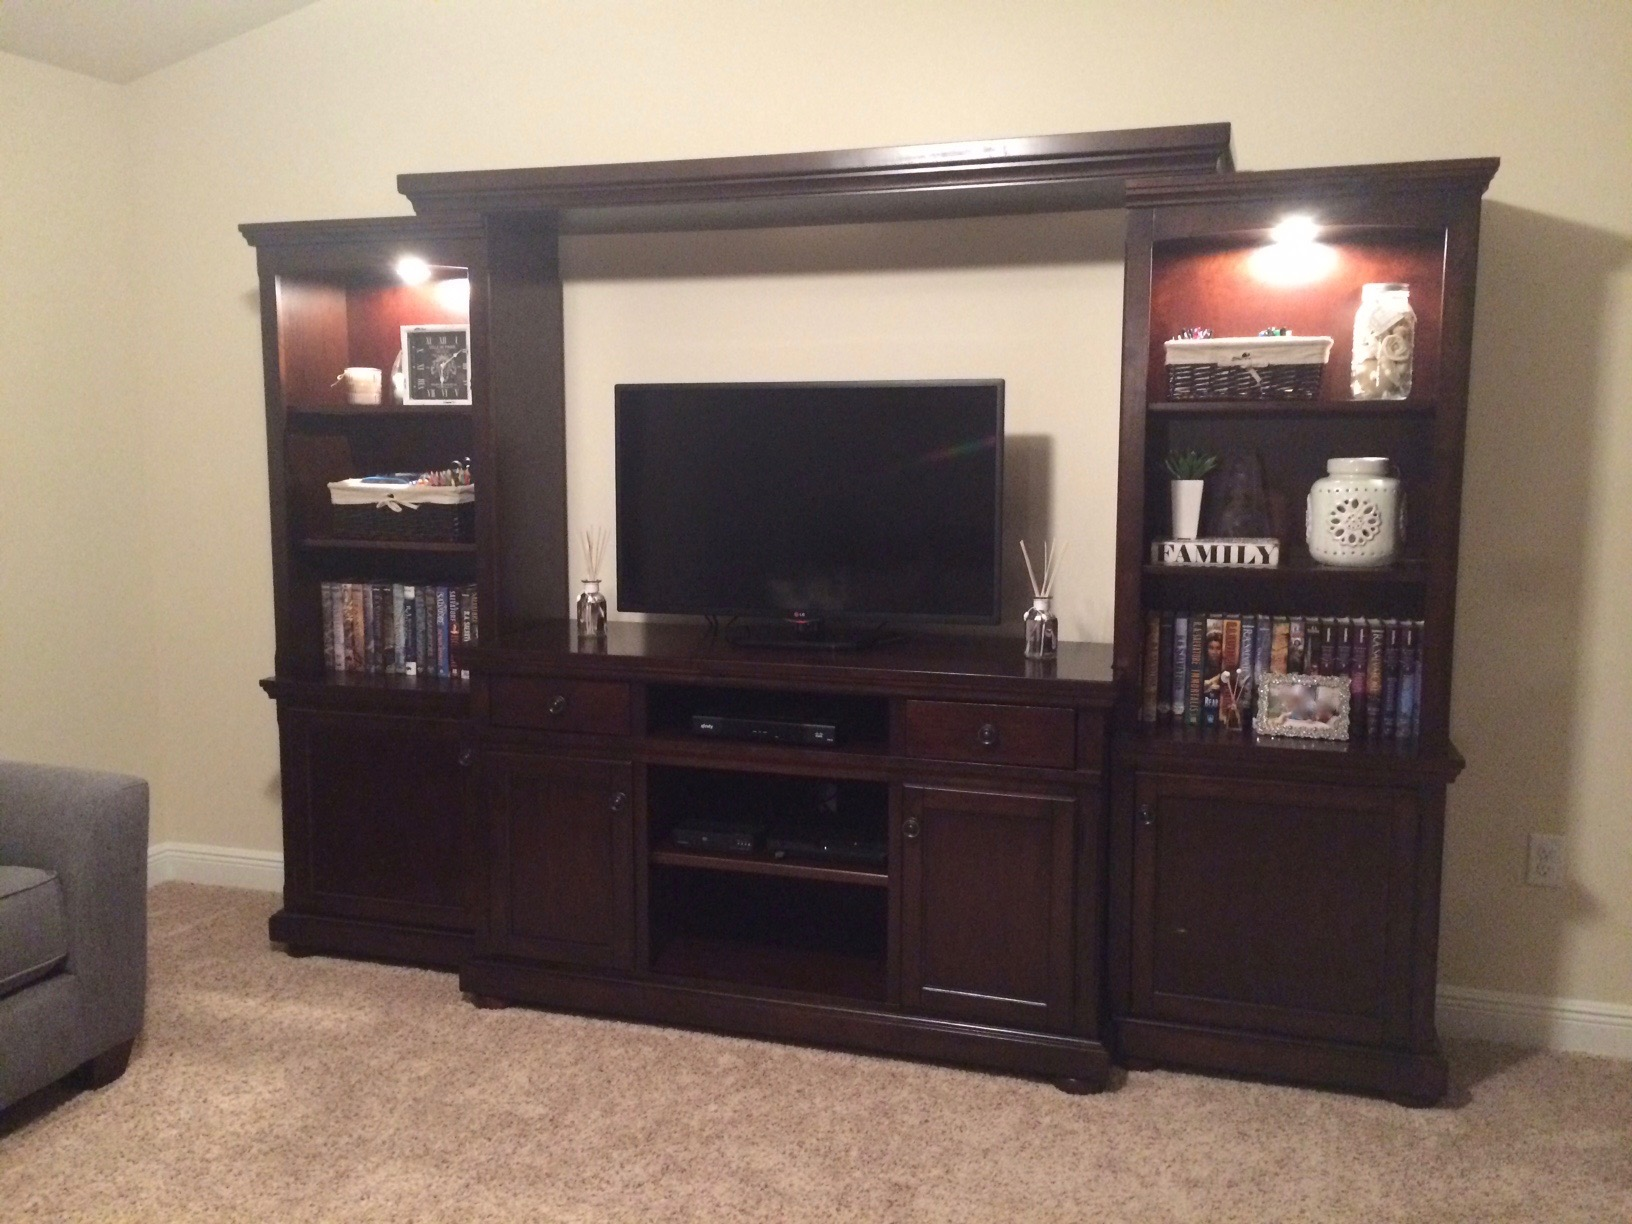 Porter Large Entertainment Wall Unit From Ashley W697 132 33 34 35 Coleman Furniture